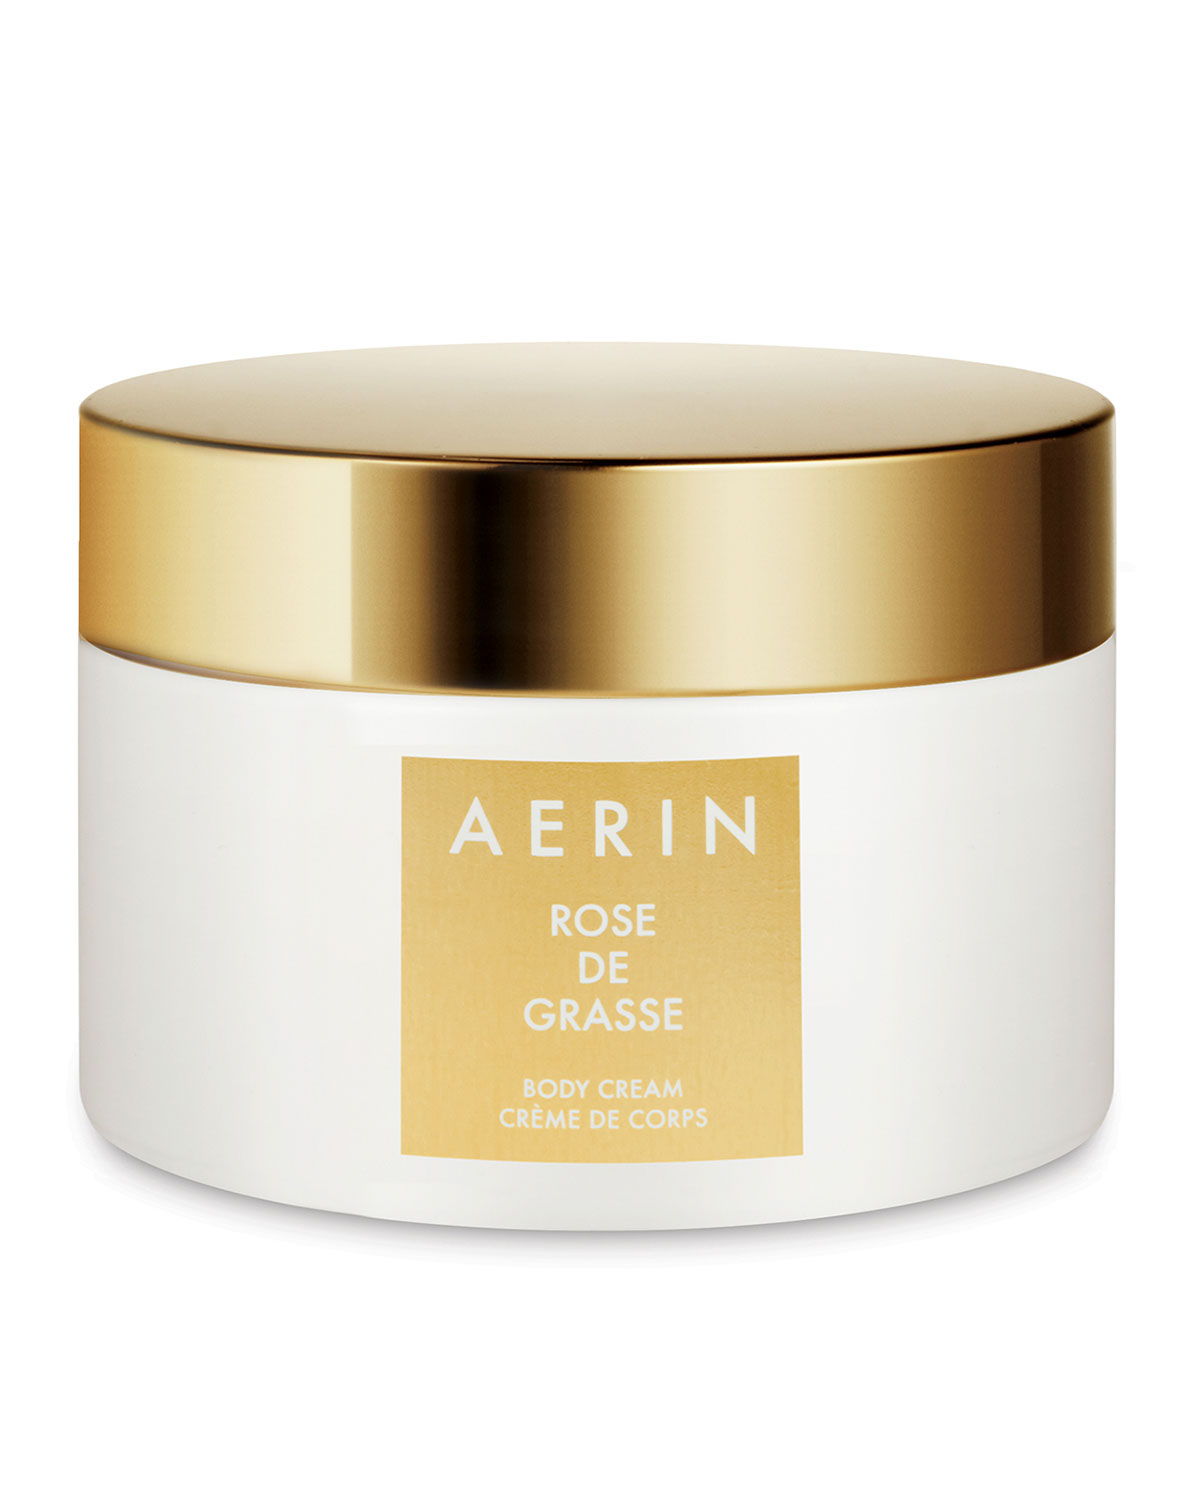 Limited Edition Rose de Grasse Body Cream, 5.0 oz. - AERIN Beauty